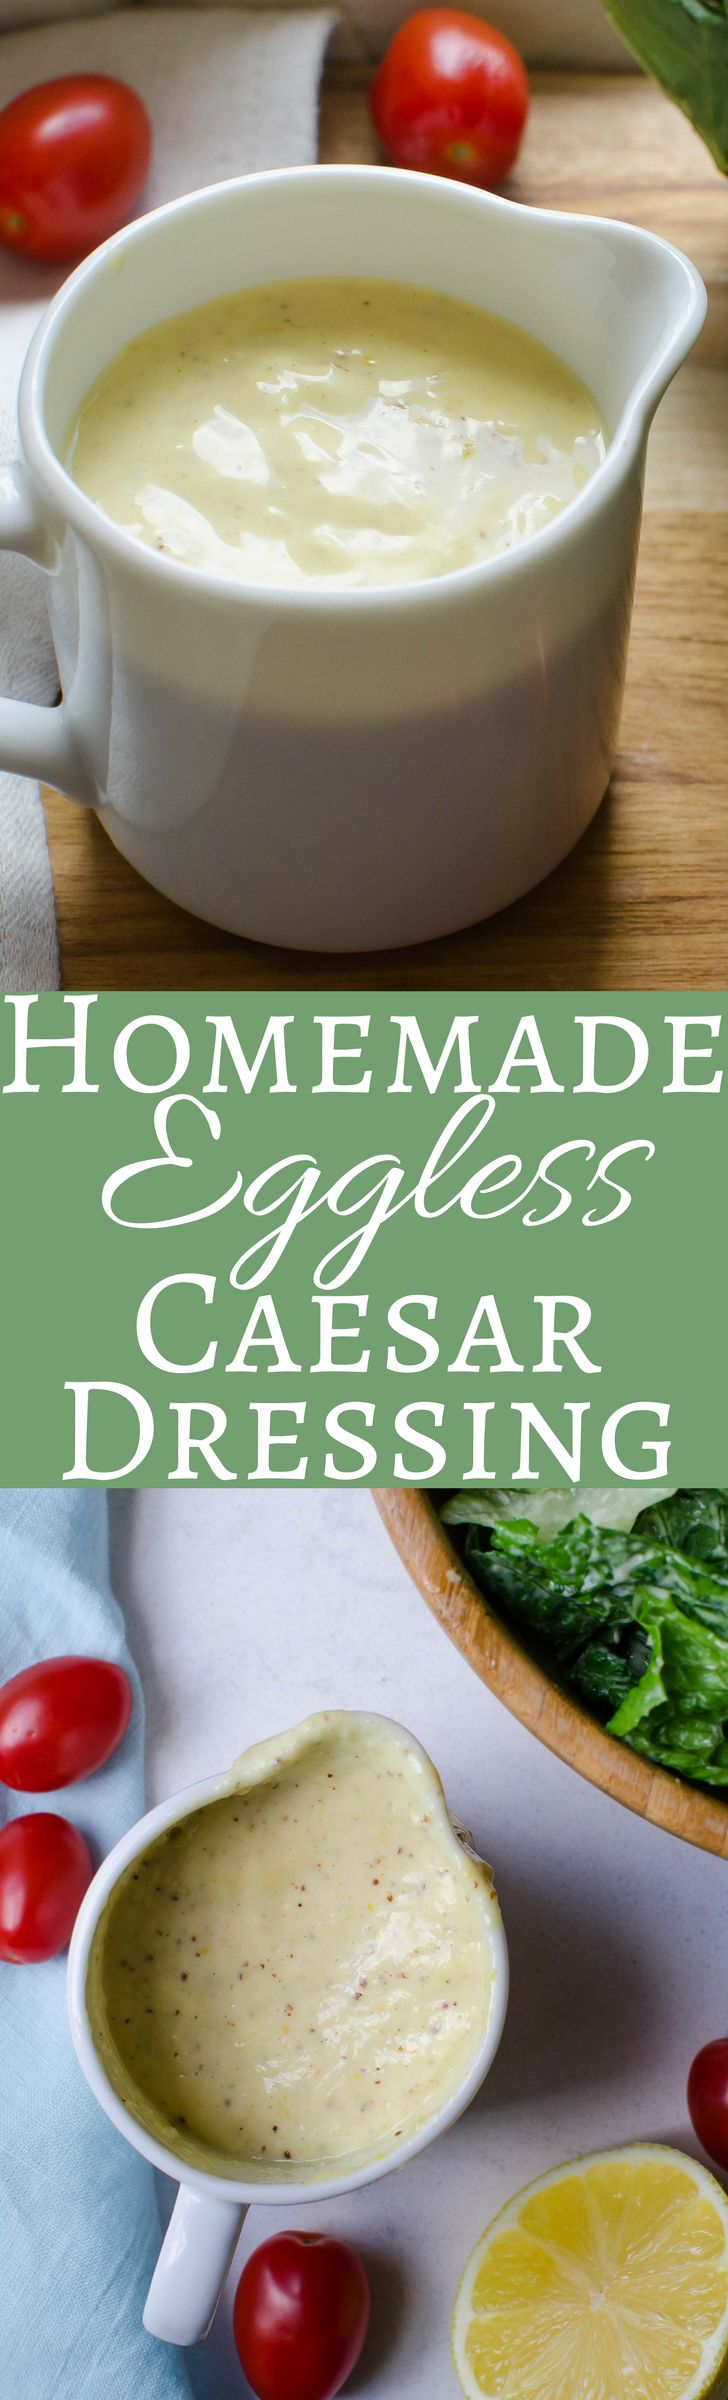 Never buy bottled dressing again! This homemade  eggless caesar dressing is everything you want in caesar - garlicky with salty depth and no raw egg! via @GarlicandZest